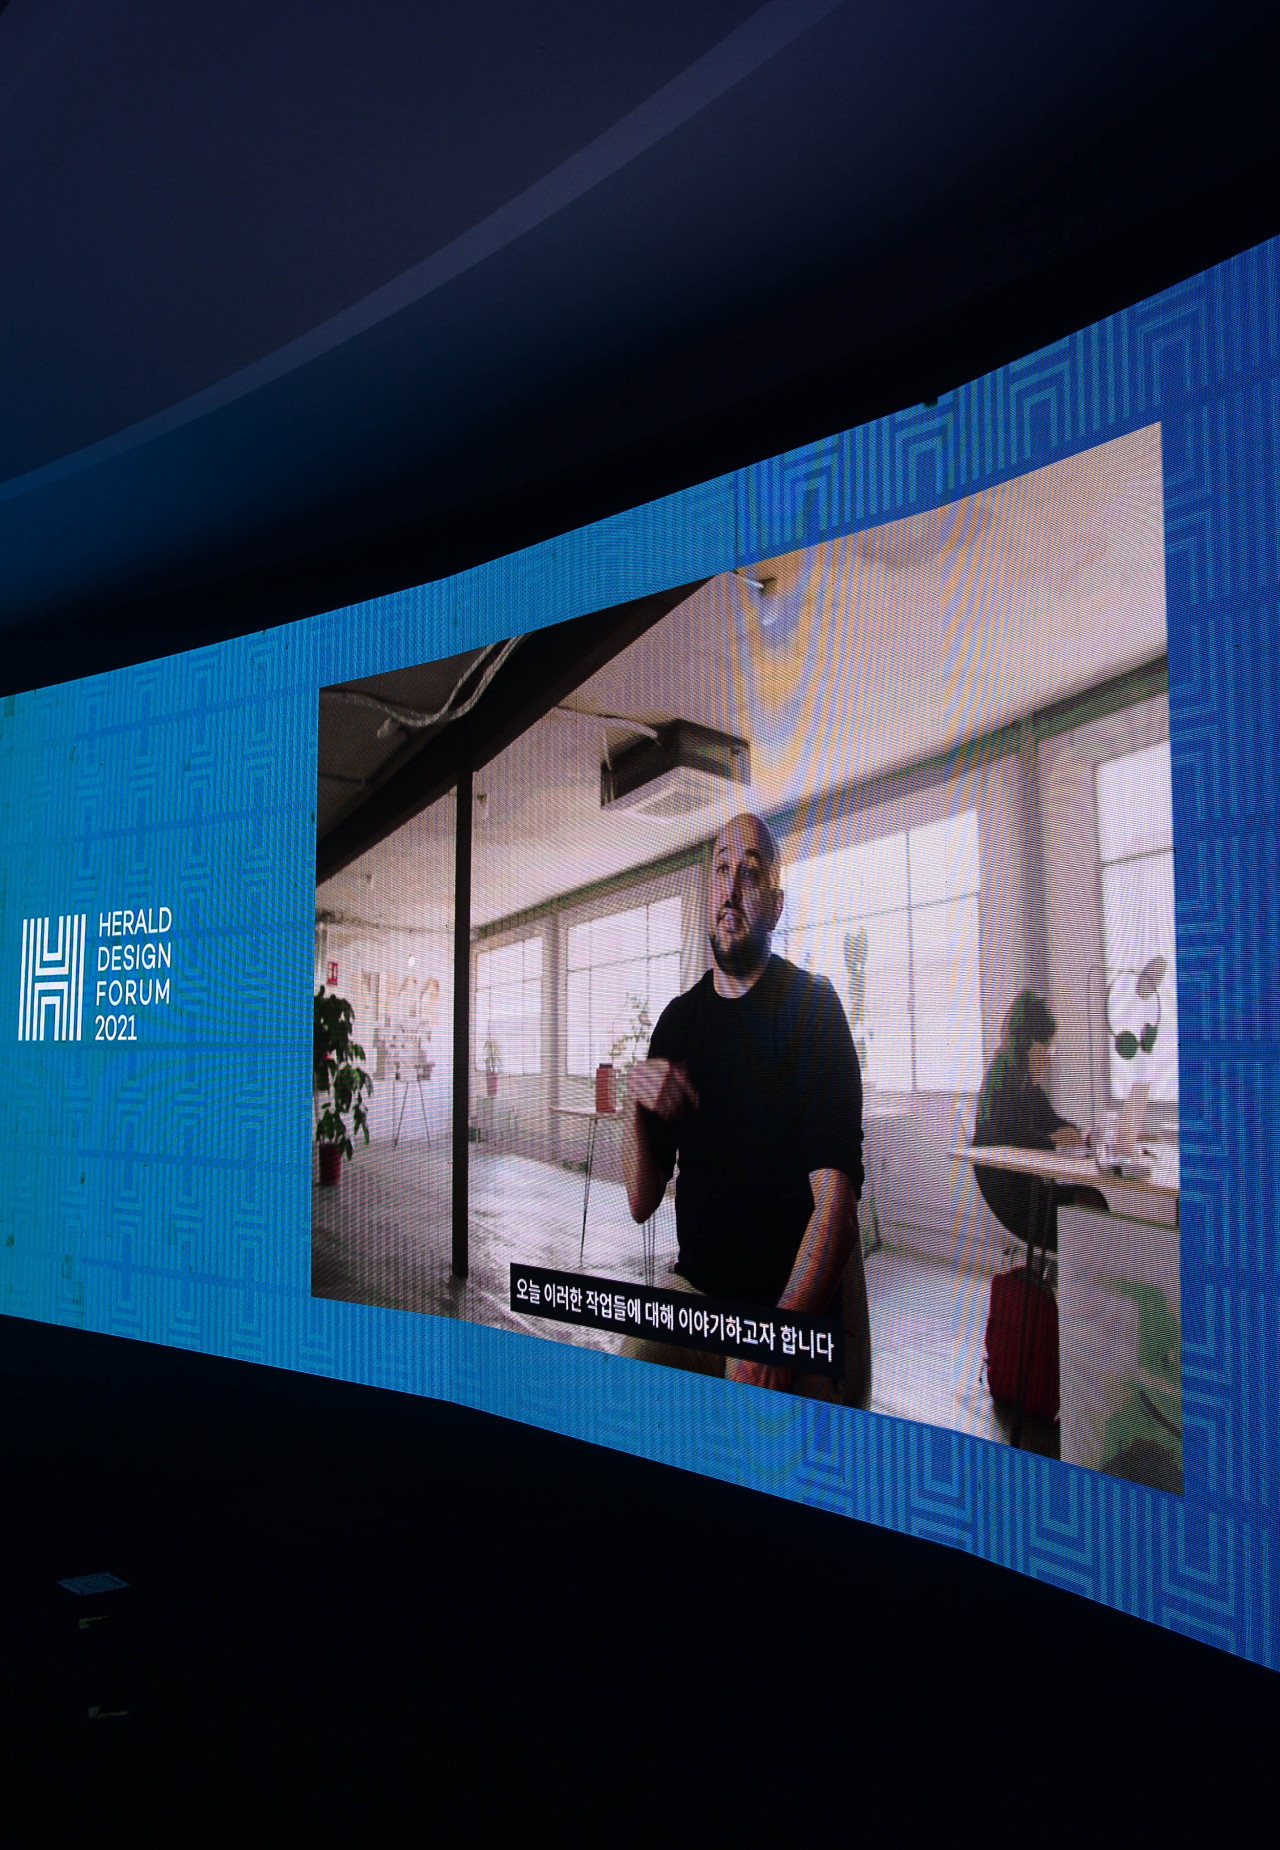 Point of Reference Studio founder and creative director Jeffrey Ludlow gives online lecture at the Herald Design Forum on Thursday. (Lee Sang-sub/The Korea Herald)